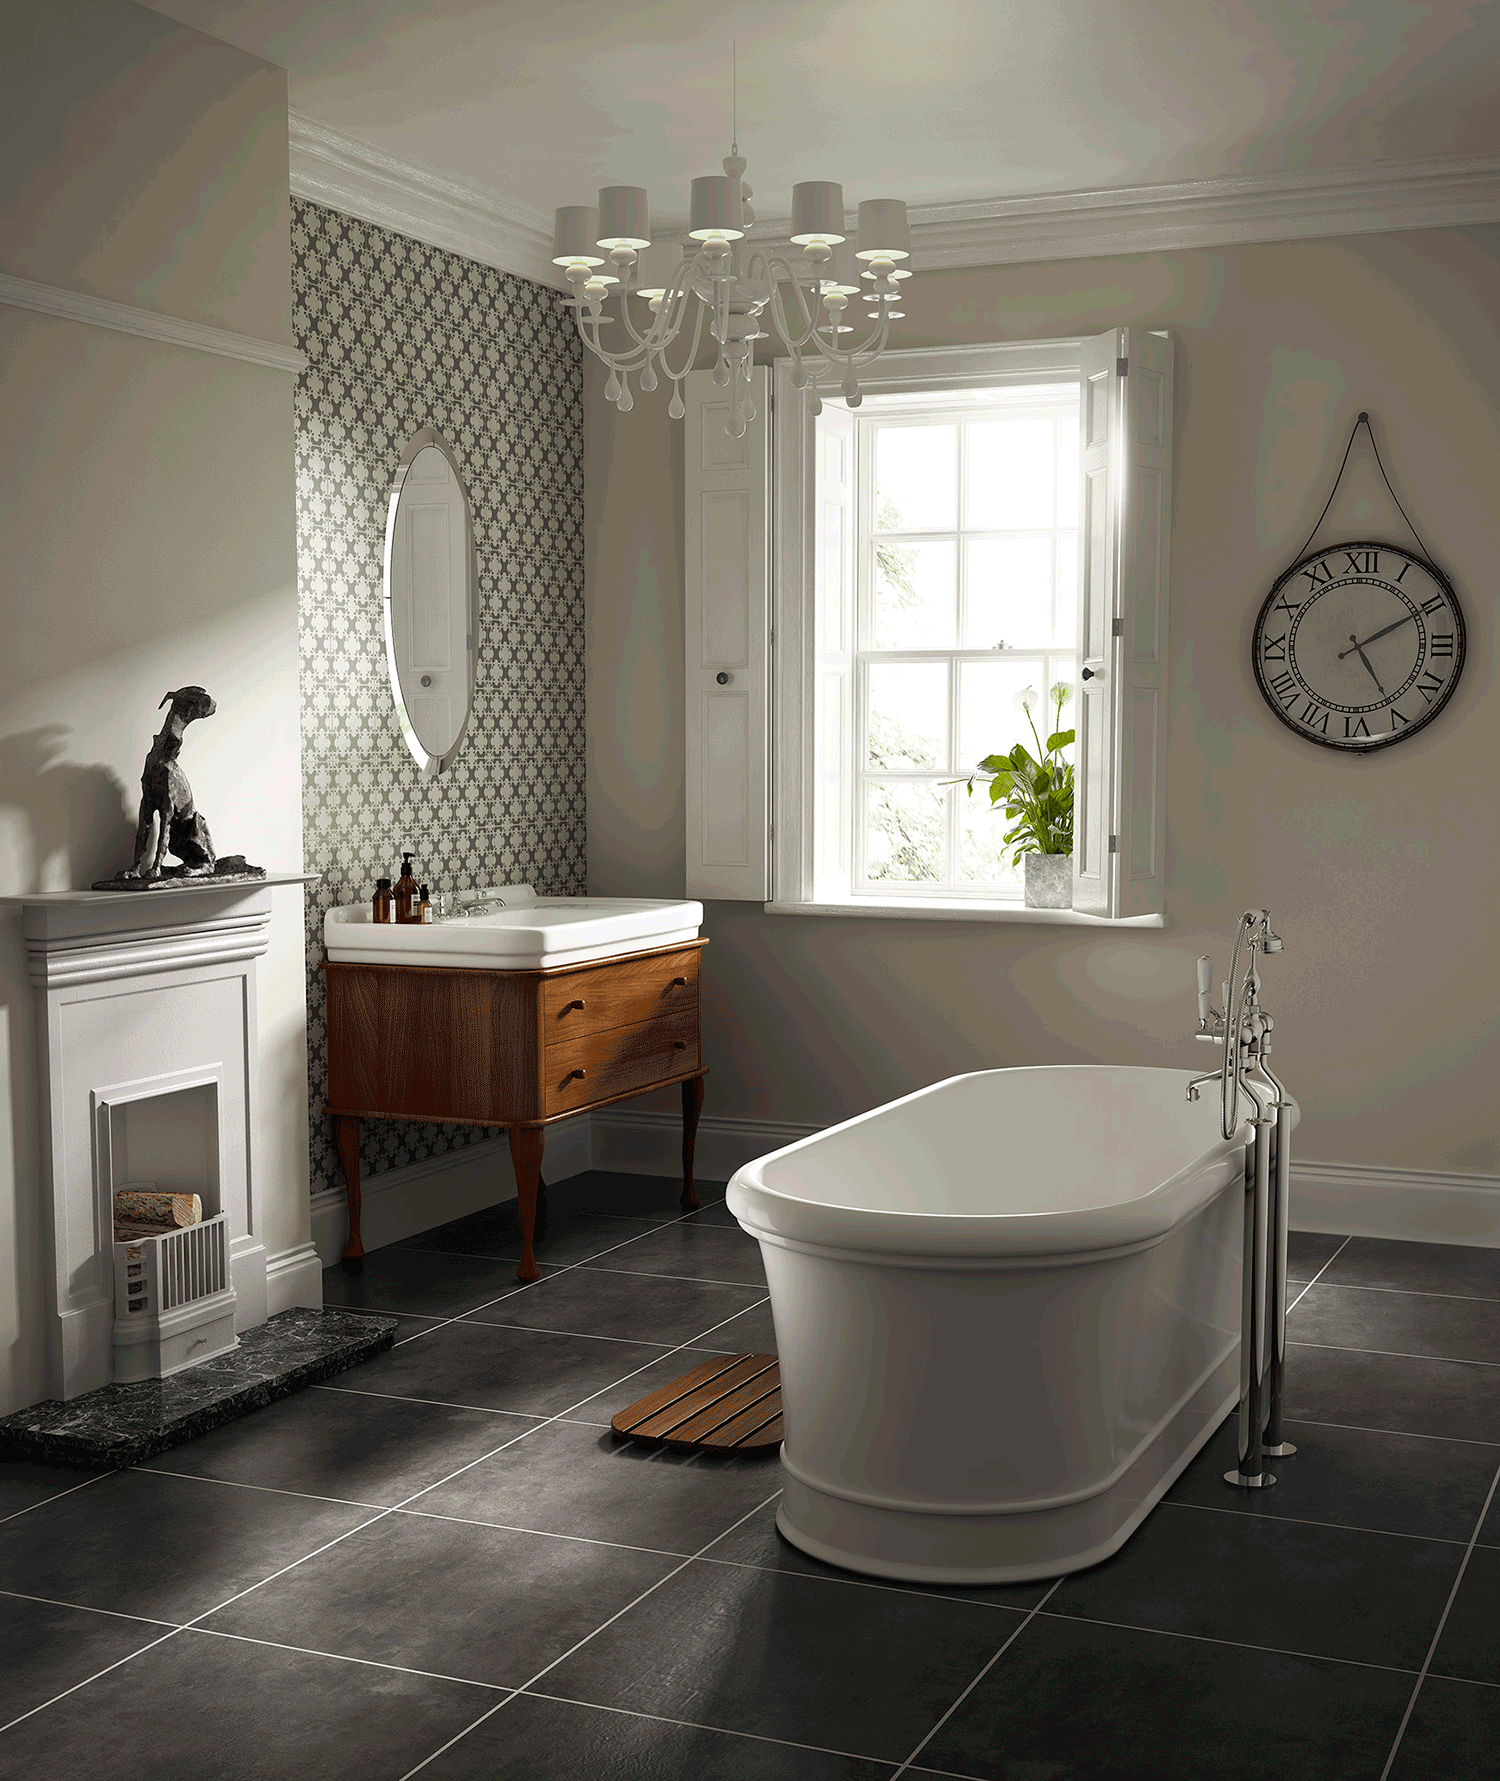 London Freestanding Bath in 2020 | Traditional bathroom ...